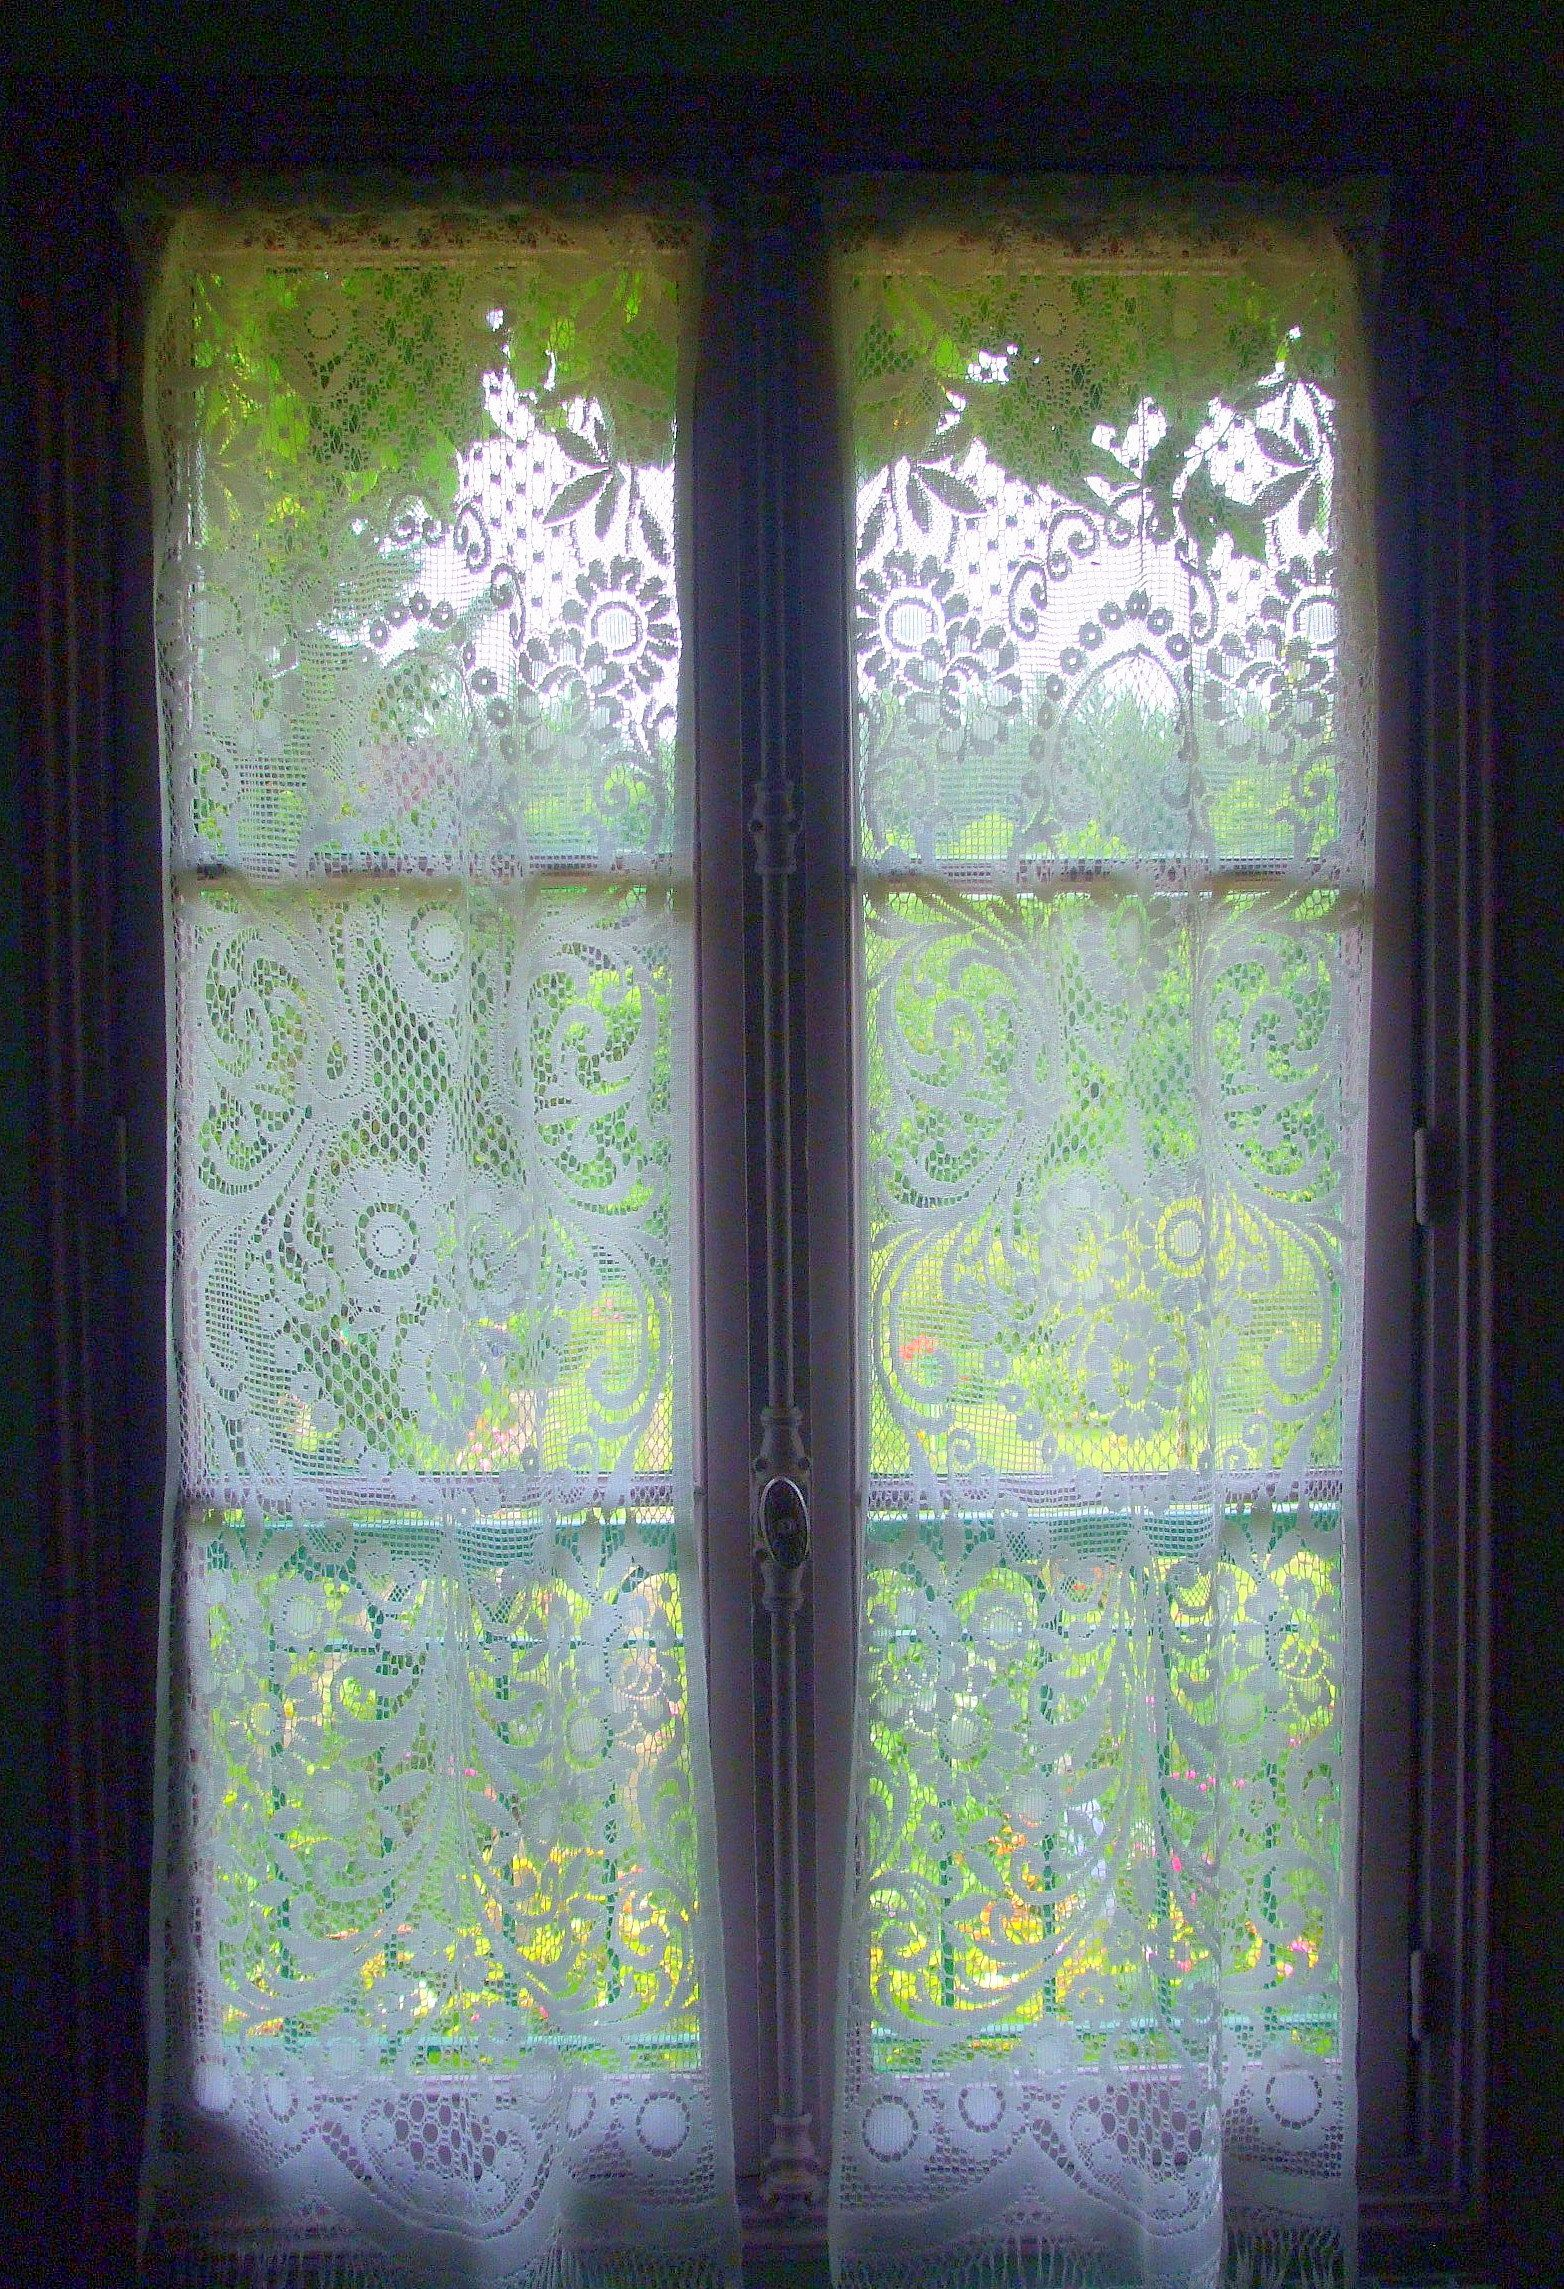 I took that picture from the inside of french painter, Claude Monet's home in Giverny, France.